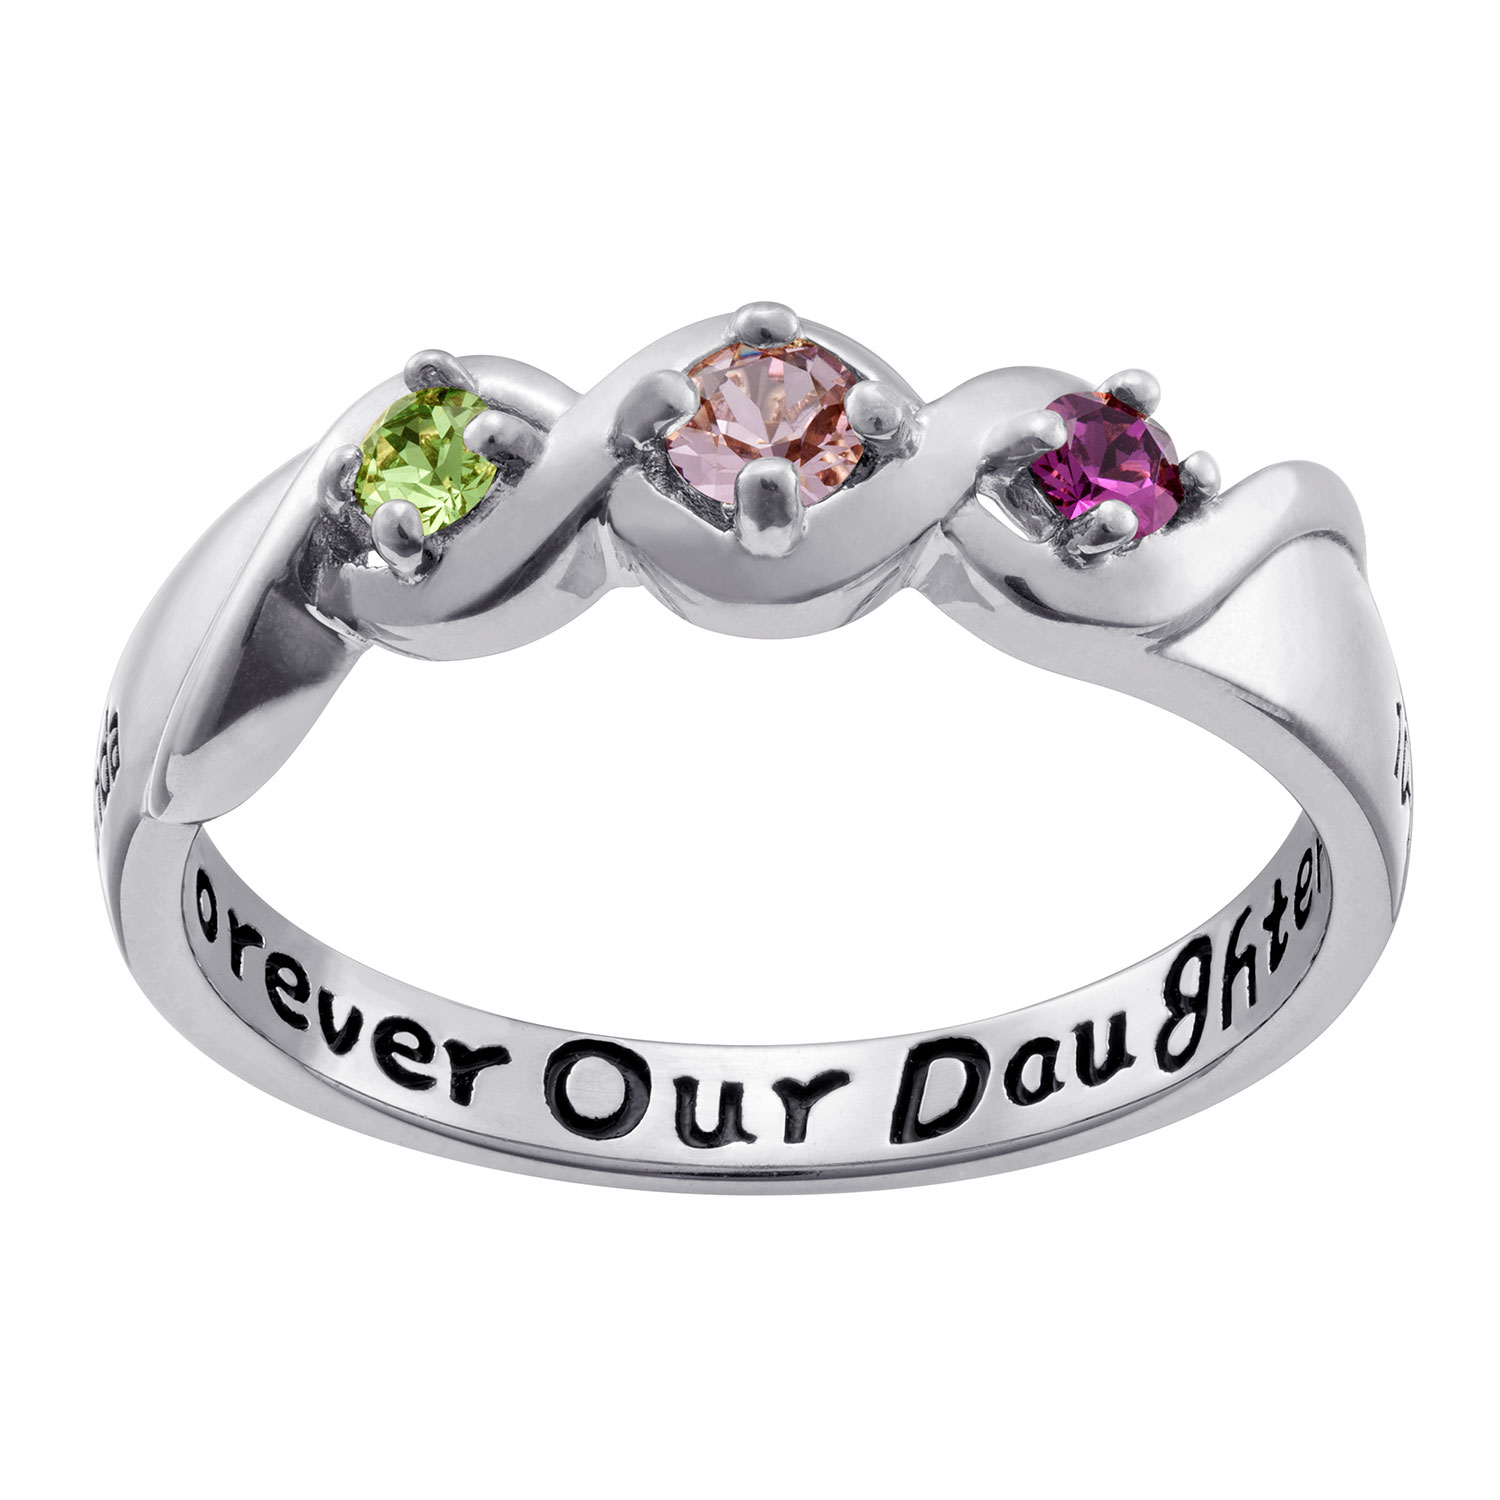 Family Jewelry Personalized Daughter's Name and Date Birthstone Ring in Sterling Silver